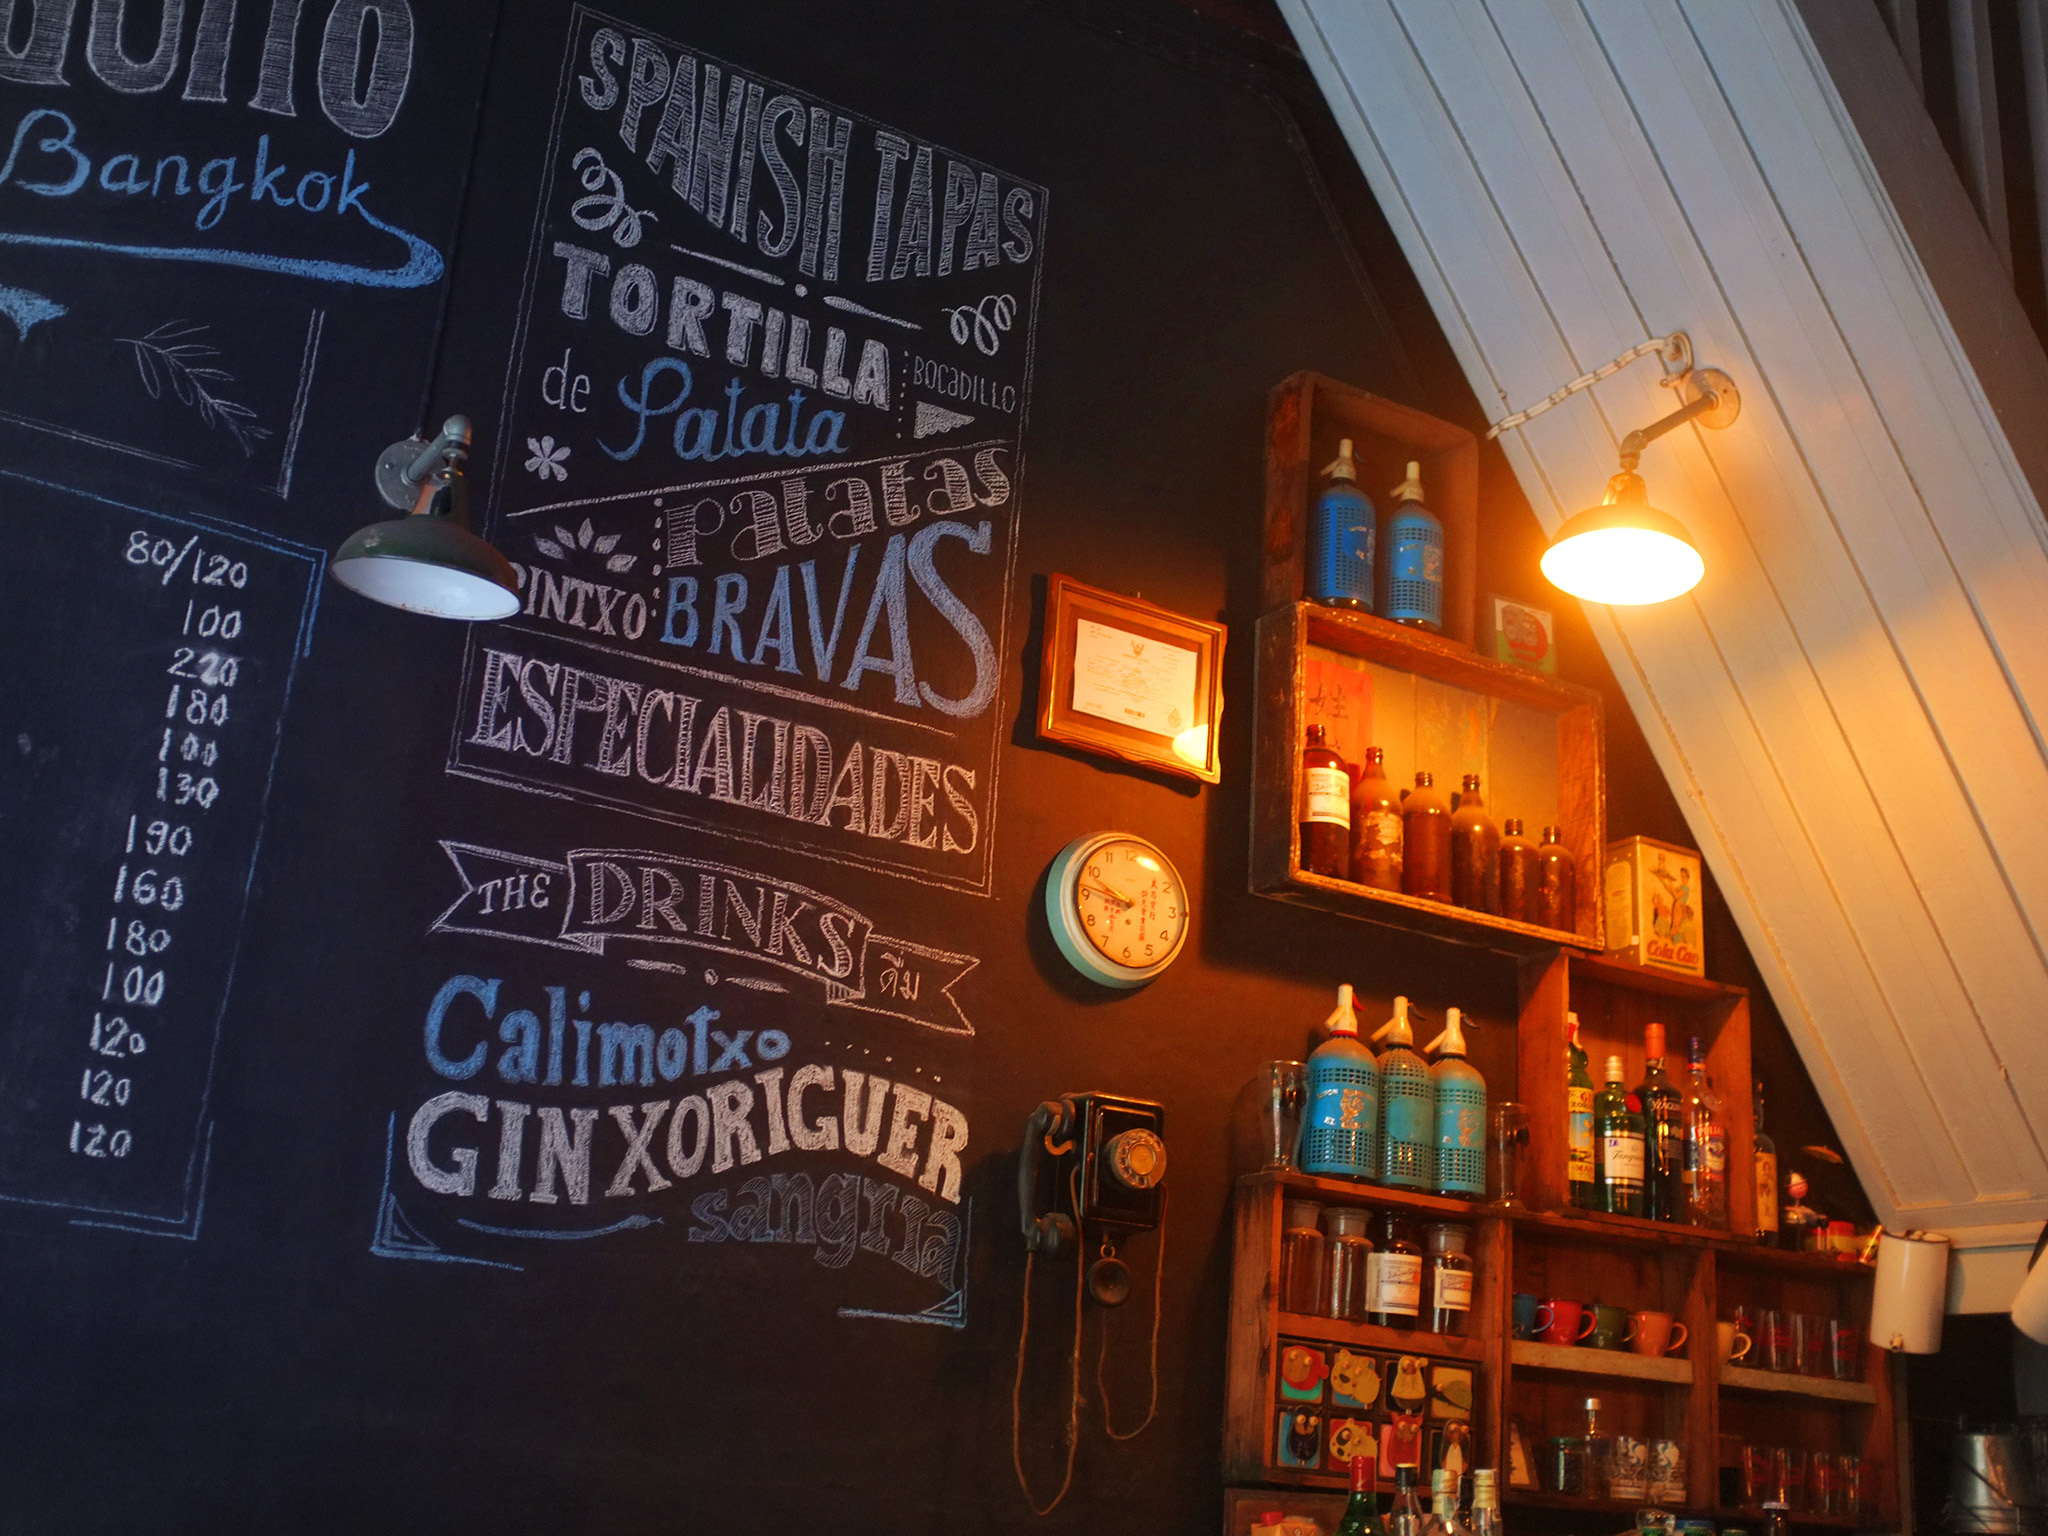 El Chiringuito serves traditional Spanish home-cooked tapas and drinks.